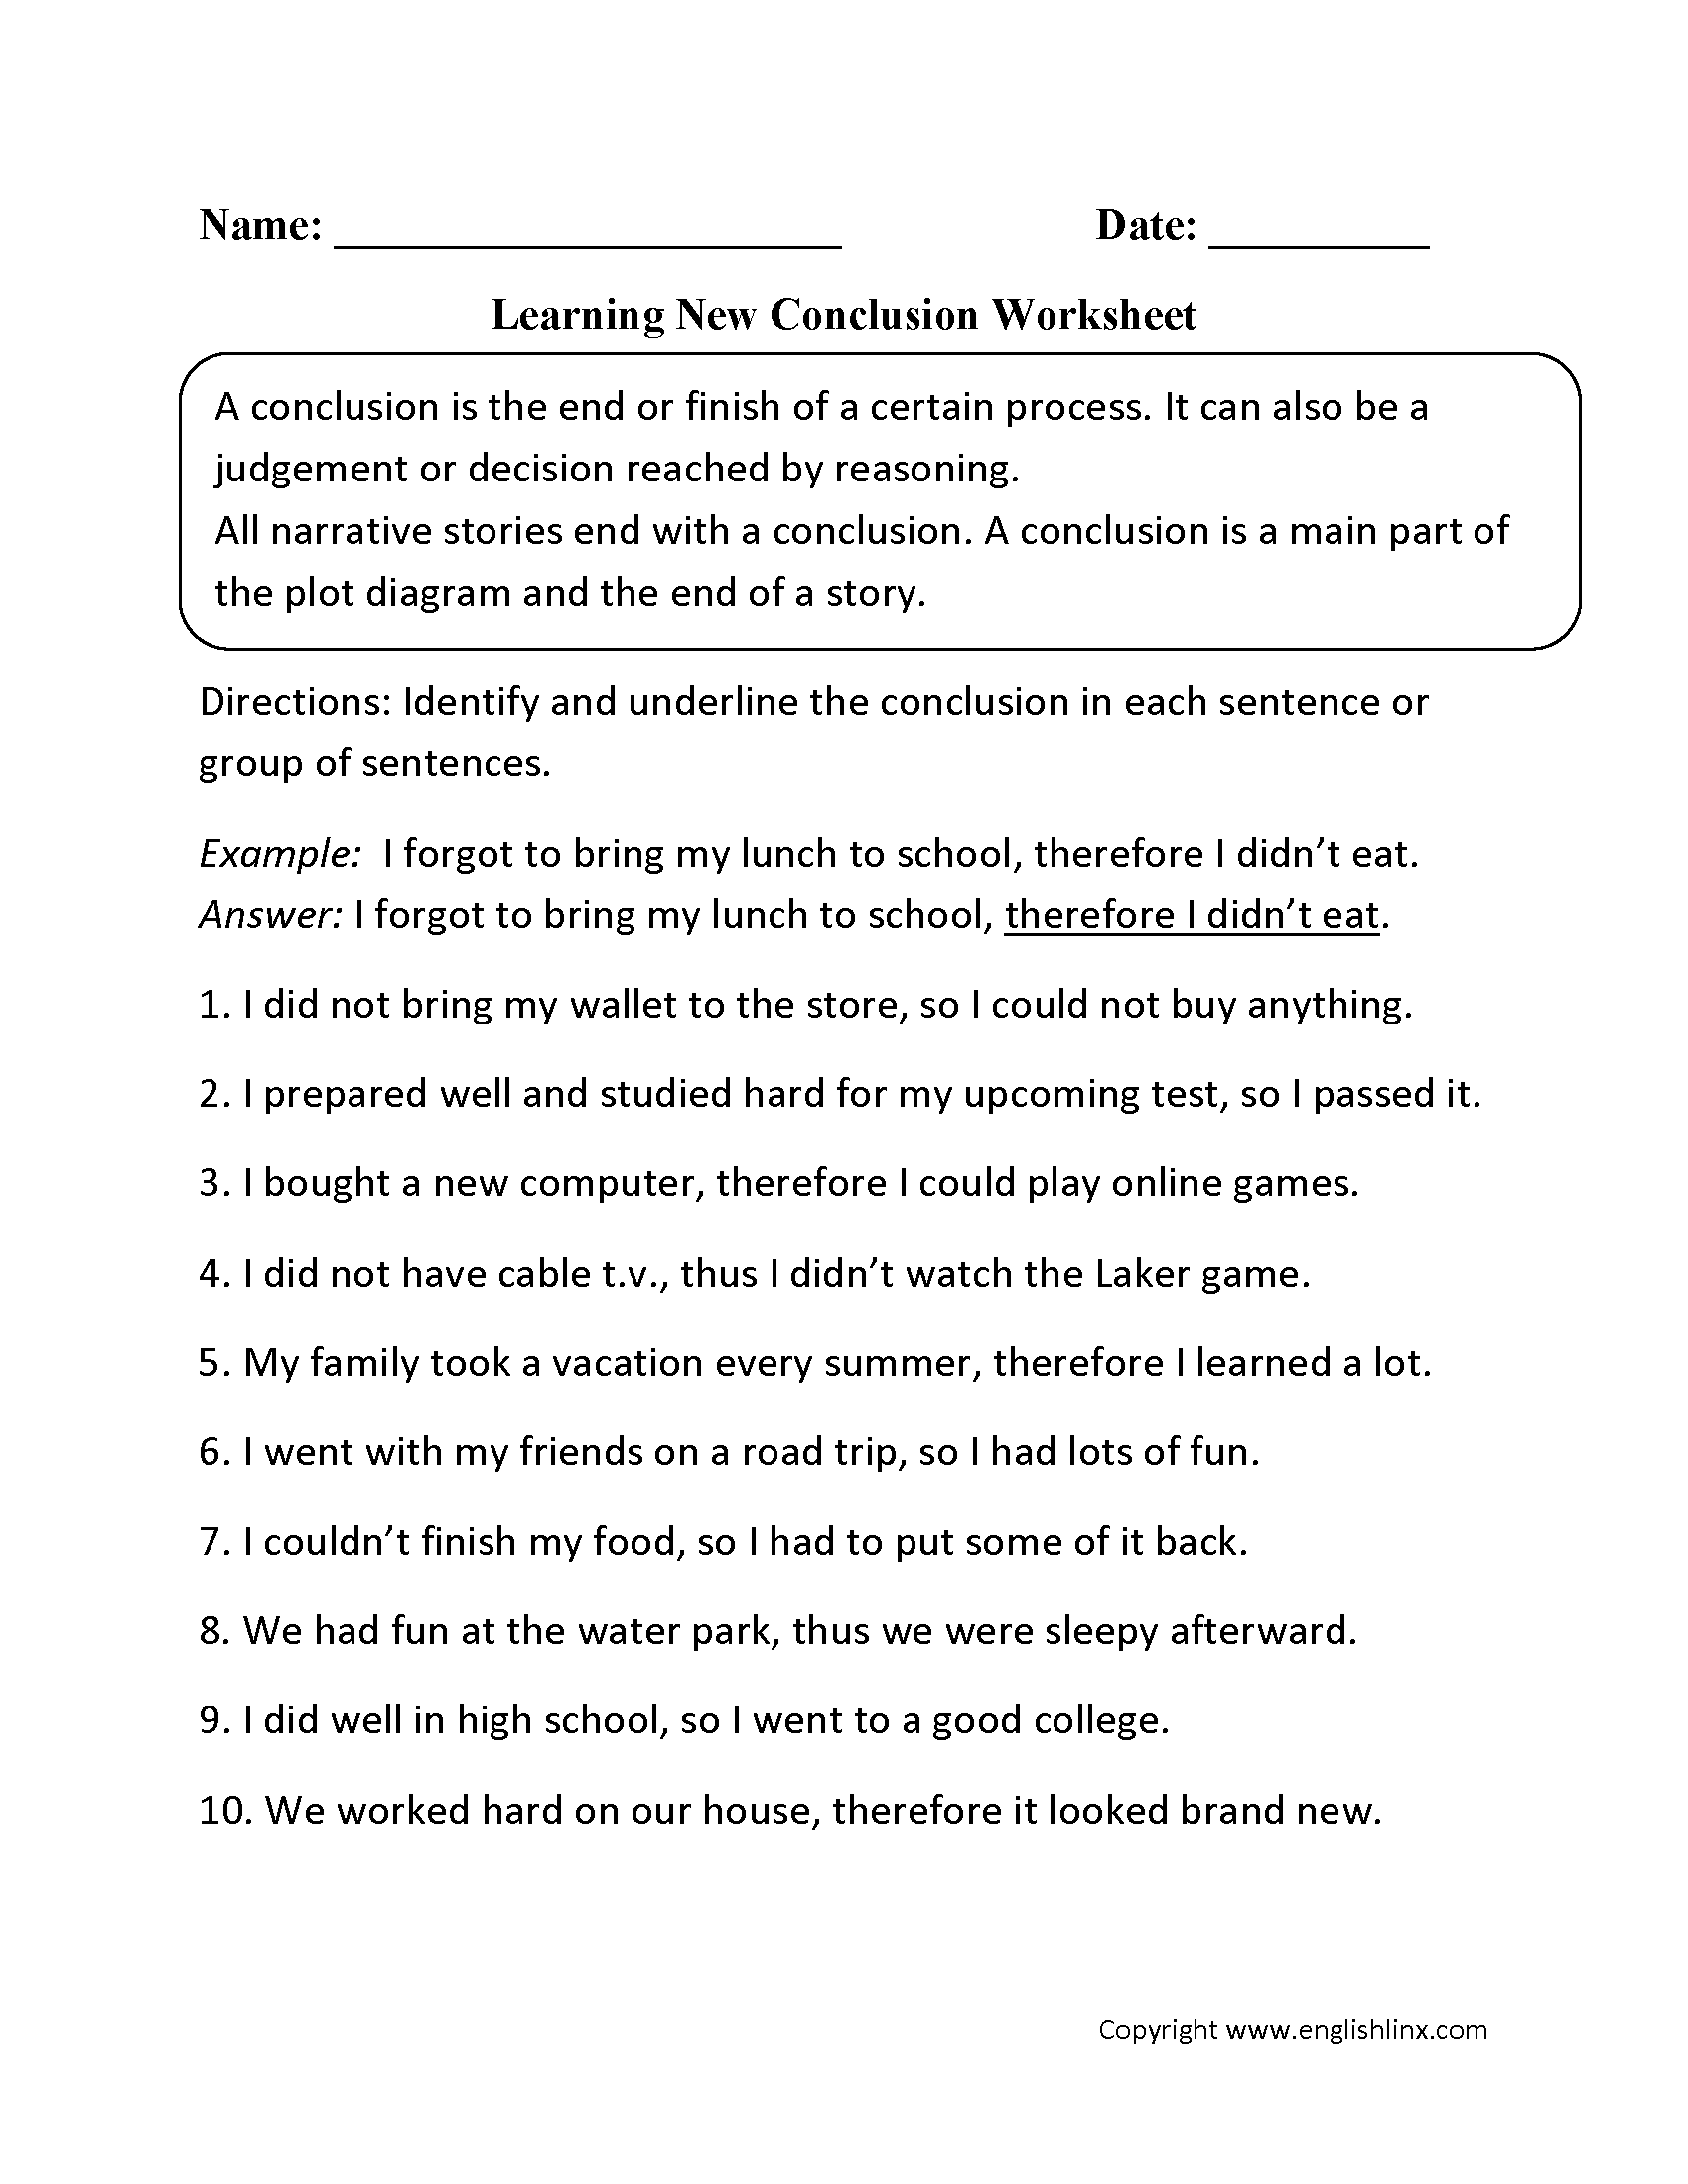 015 How To Write Conclusion For Project Learning New